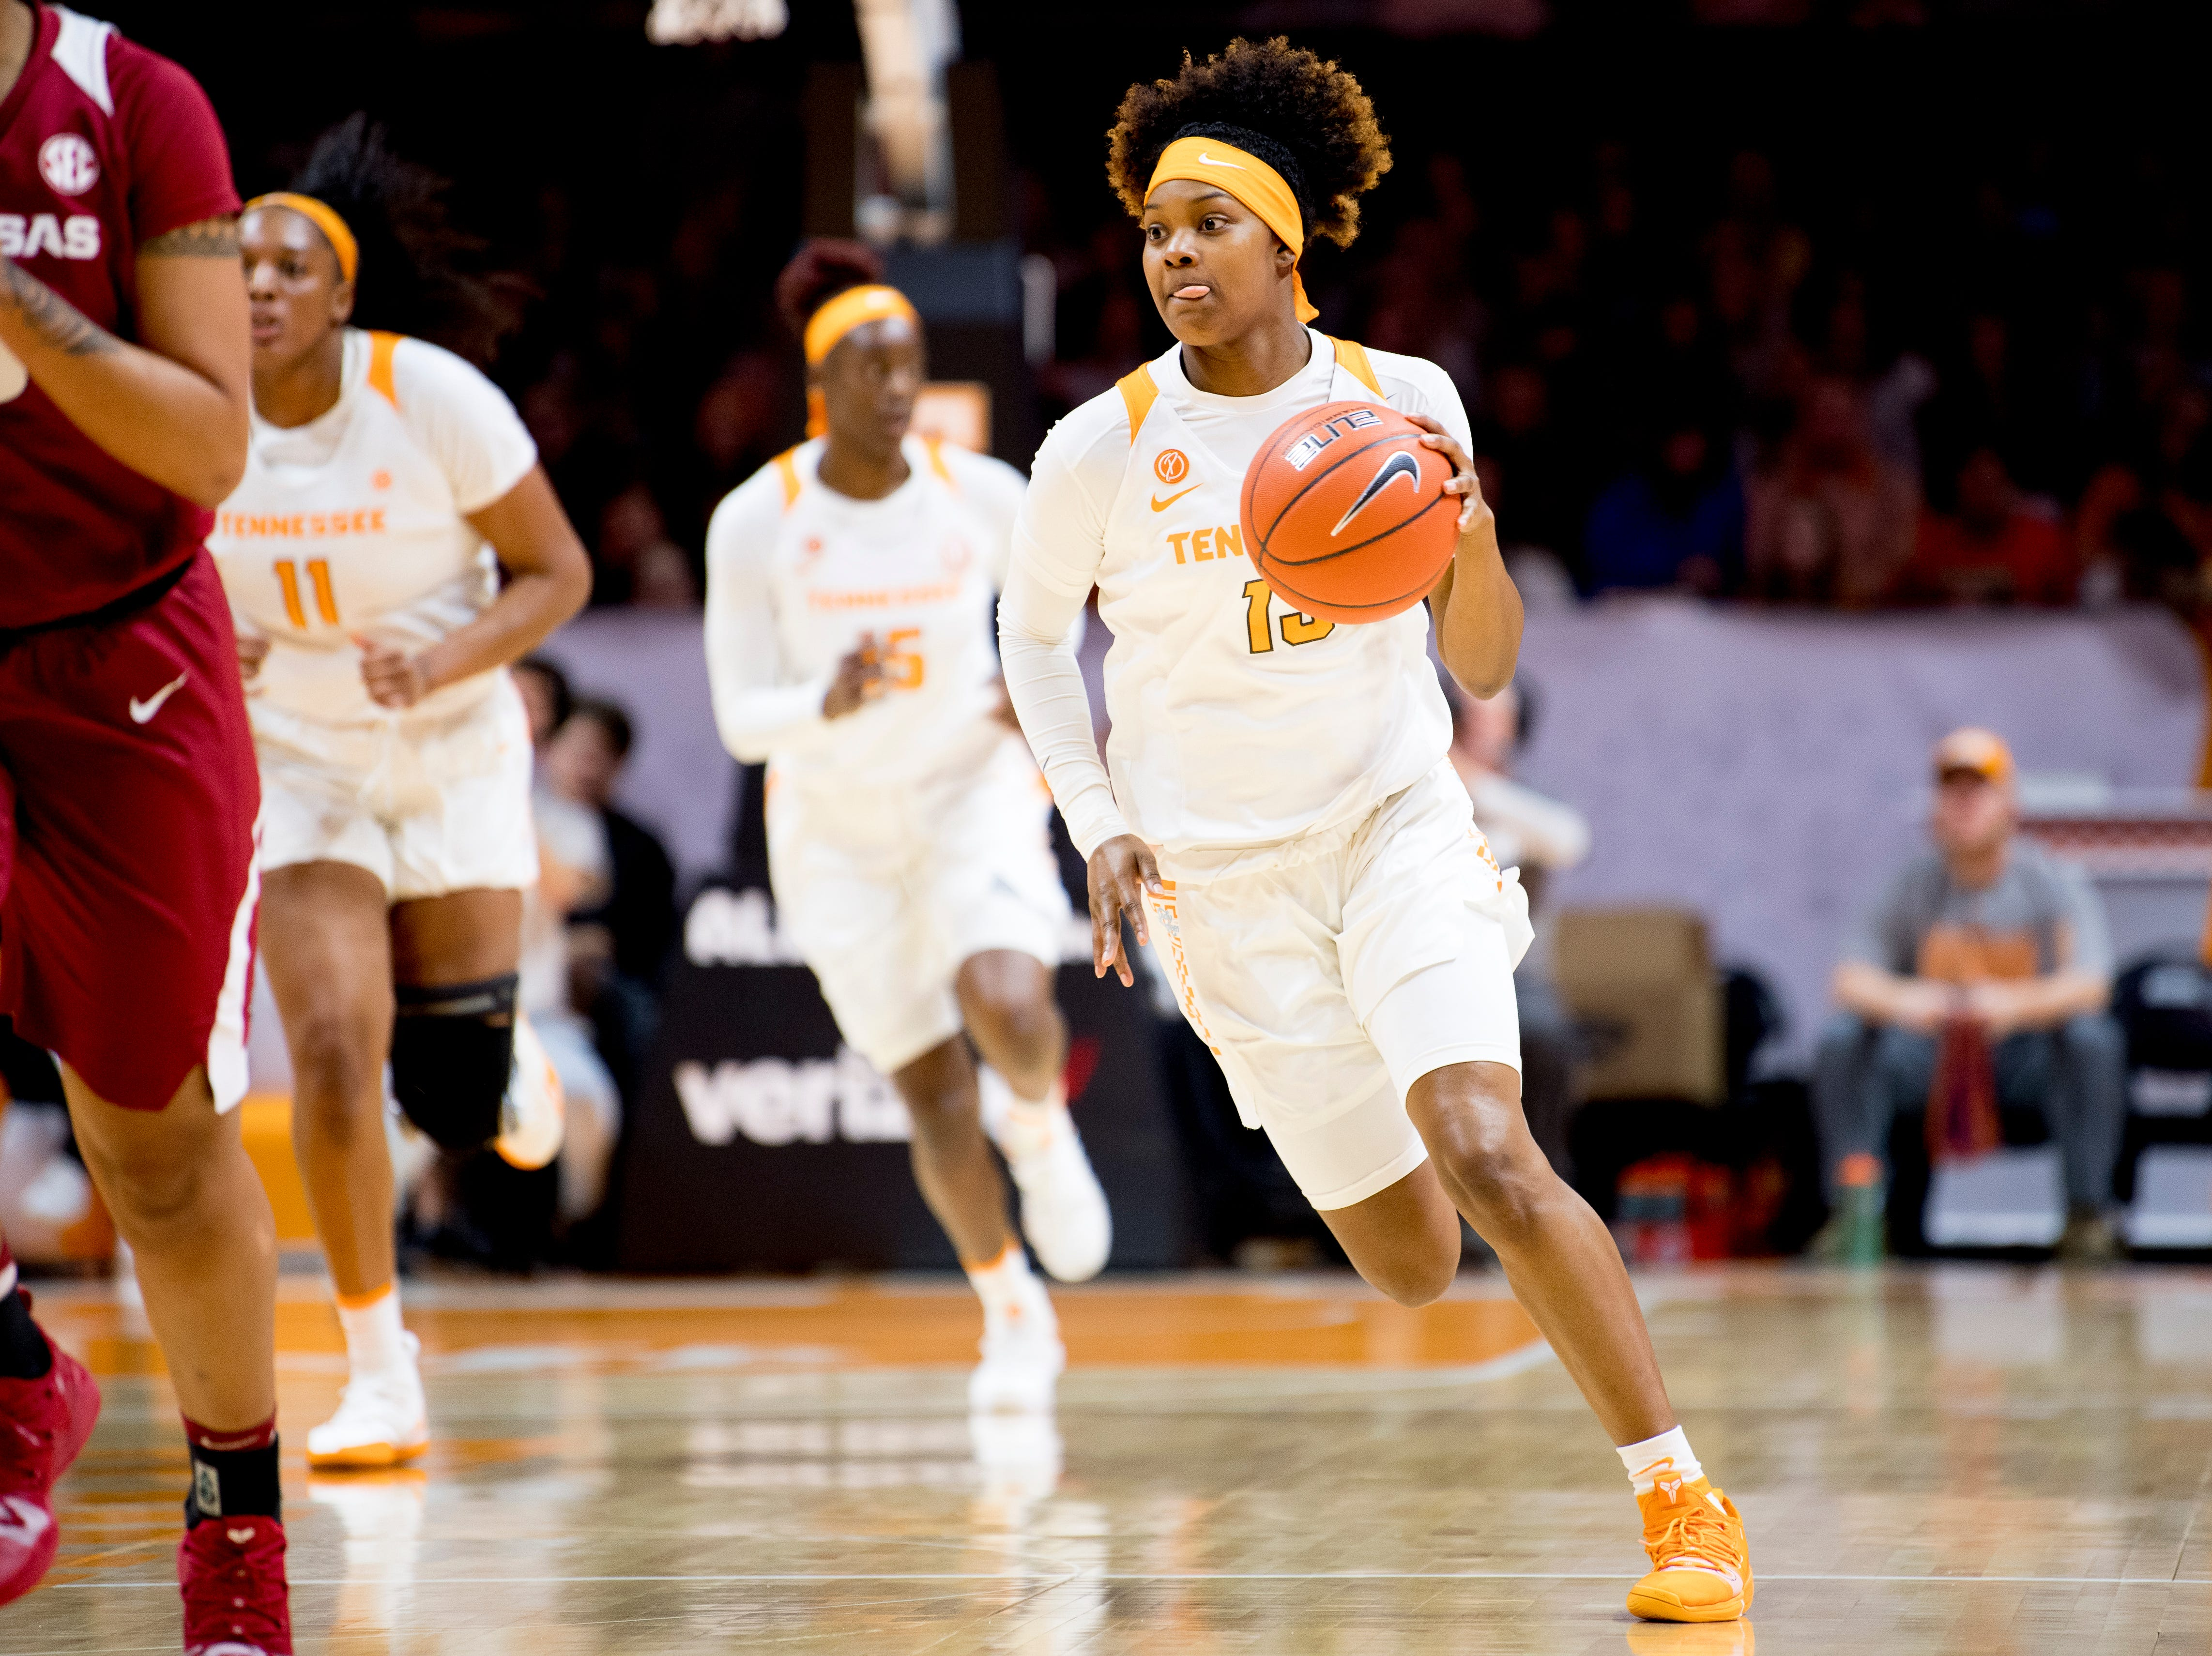 Tennessee guard Jazmine Massengill (13) dribbles down the court during a game between Tennessee and Arkansas at Thompson-Boling Arena in , Tennessee on Monday, January 21, 2019.